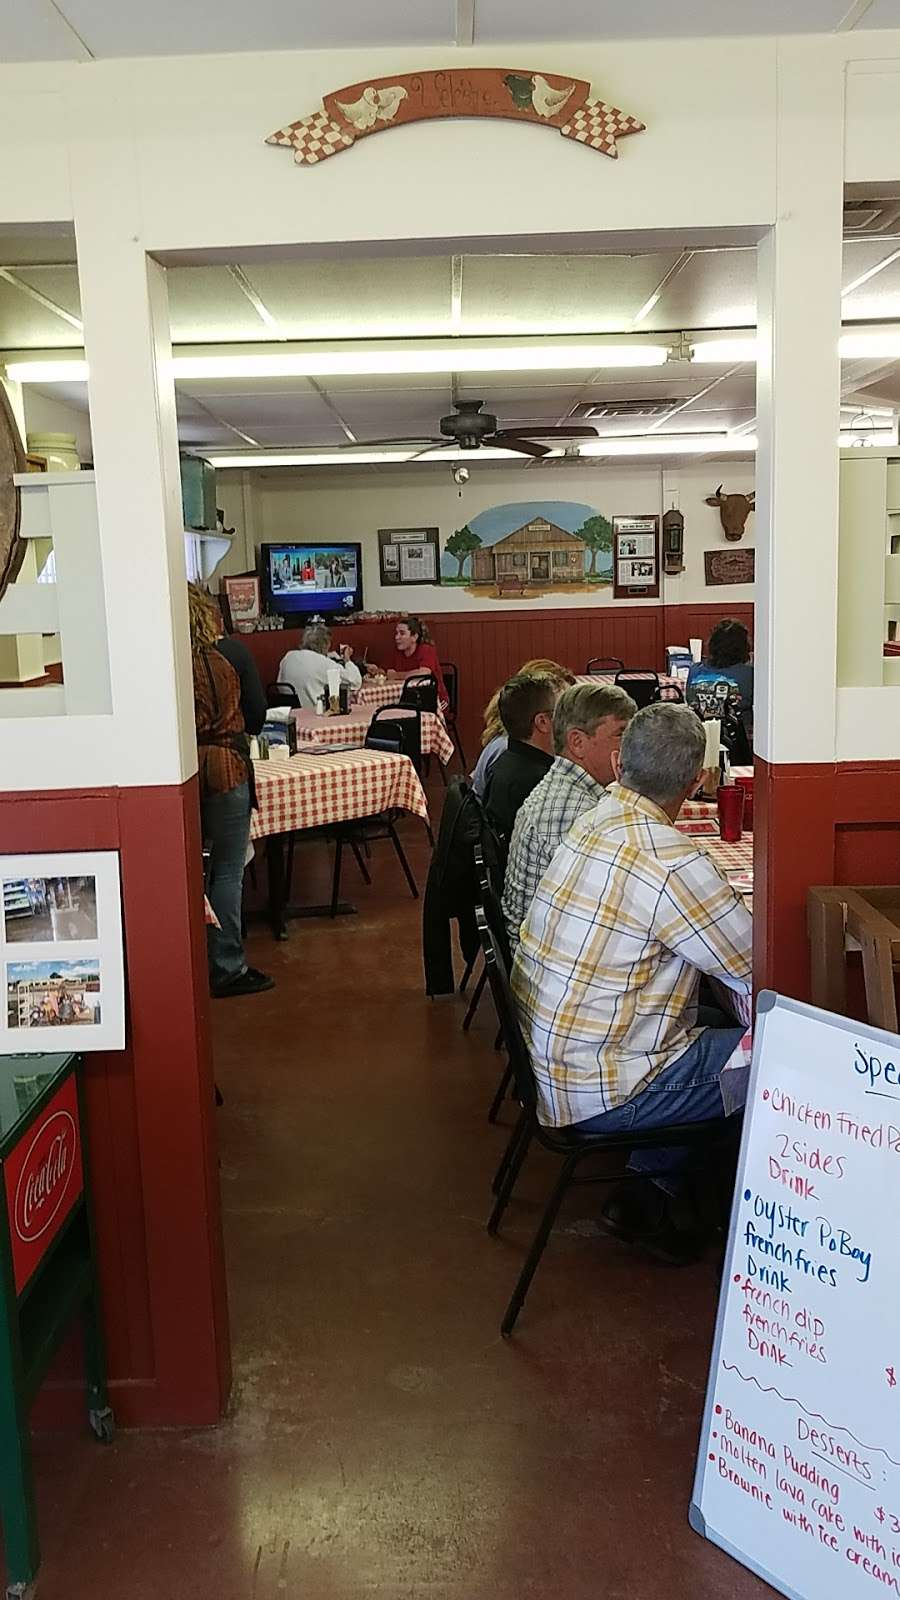 Ropers Country Store & Cafe - convenience store  | Photo 1 of 8 | Address: 37014 Farm to Market 1093, Simonton, TX 77476, USA | Phone: (281) 533-0585